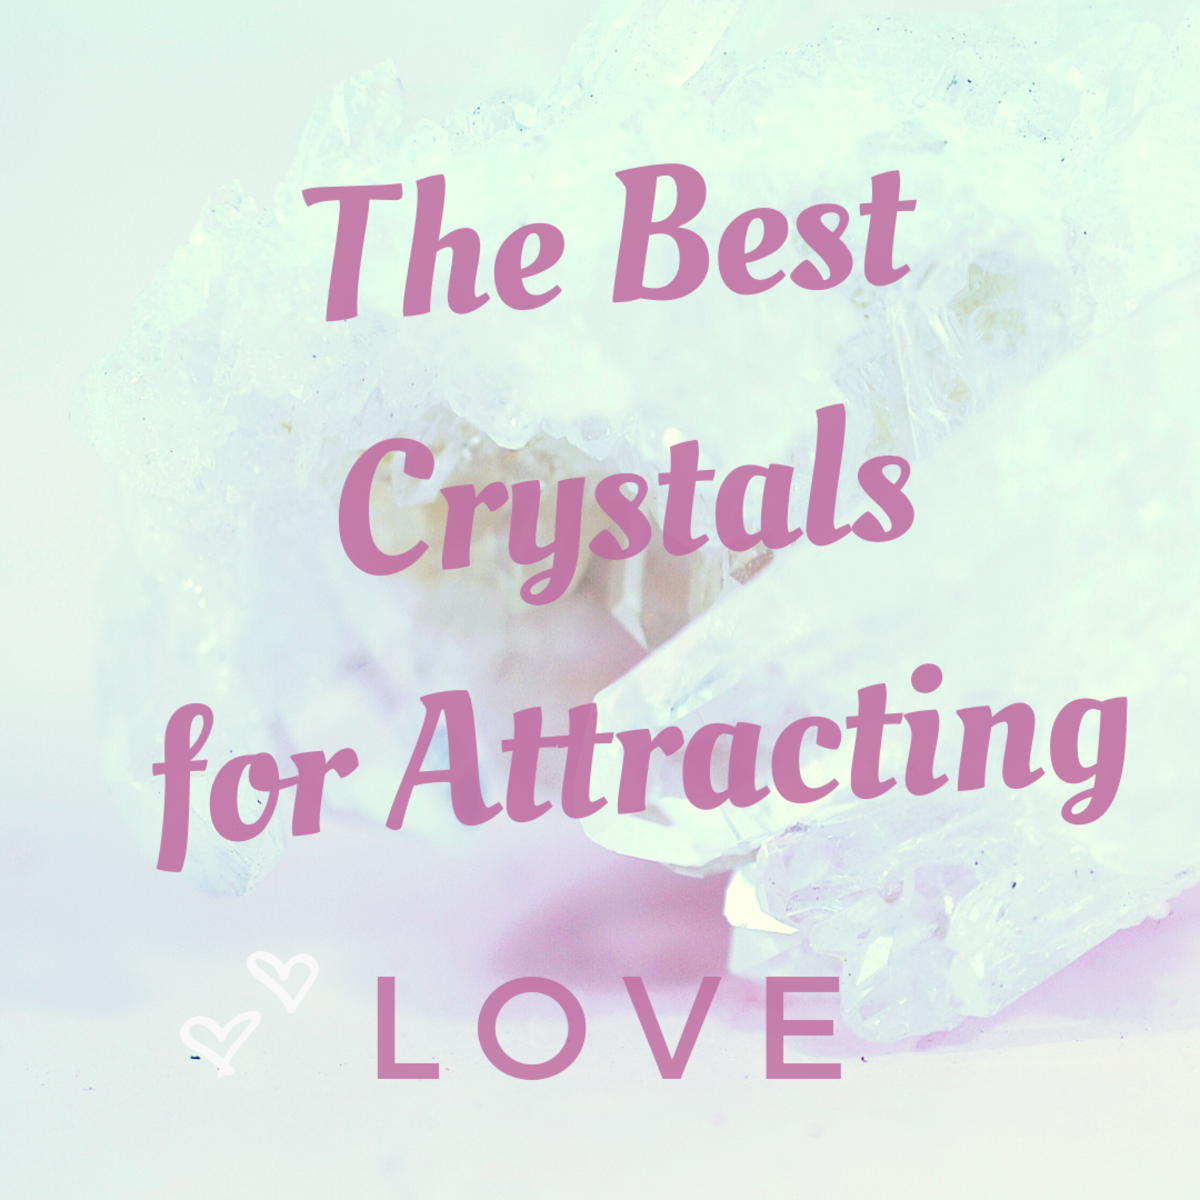 Best Crystals for Love, Romance, and Attracting Your Soulmate or Twin Flame